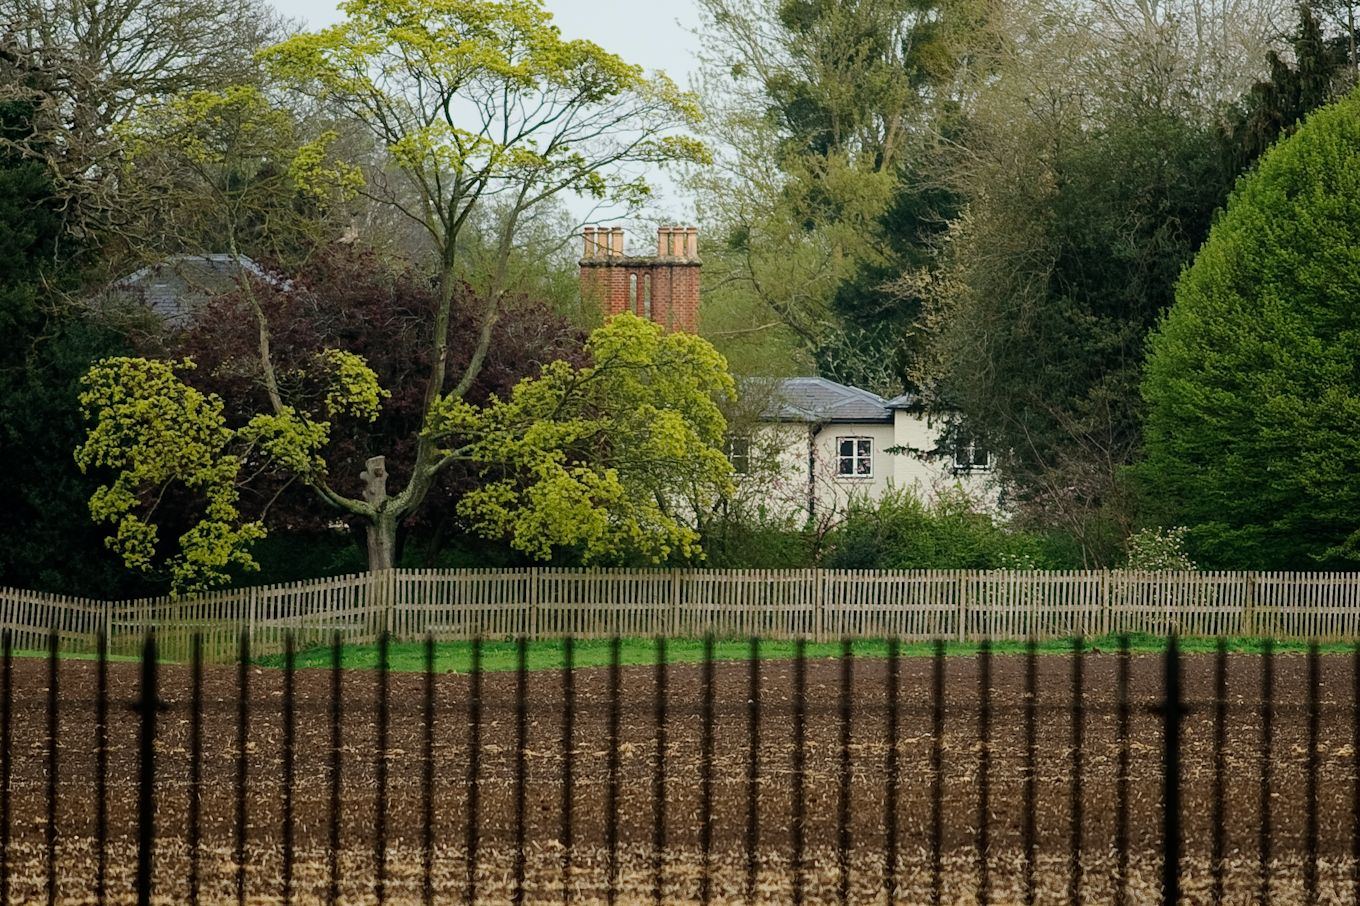 A view of Prince Harry and Meghan Markle's new home Frogmore Cottage in Windsor.